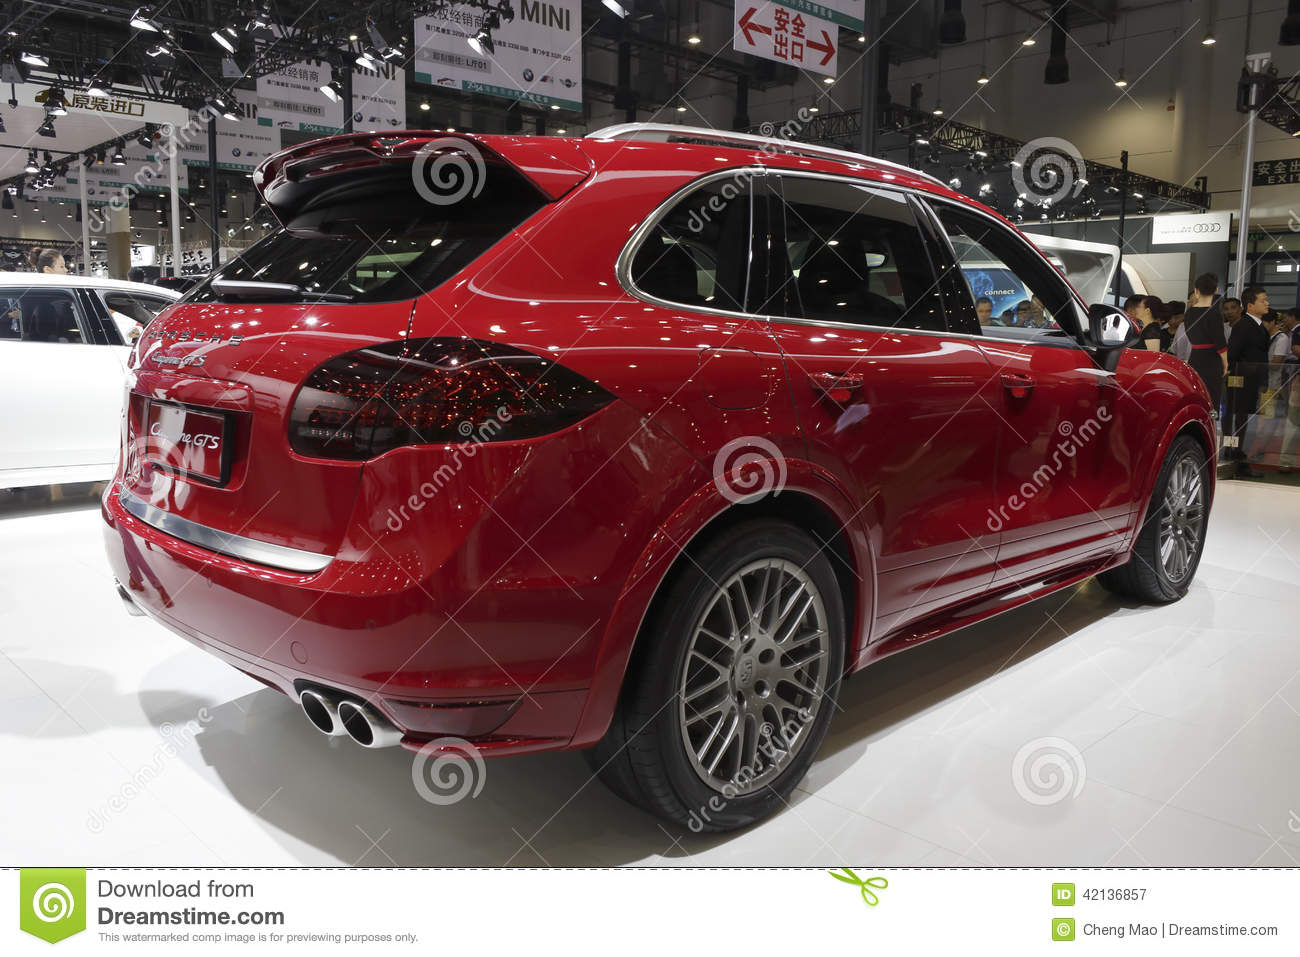 Red Porsche Cayenne Gts Suv Rear View Editorial Photography Image Of Luxury Wheel 42136857